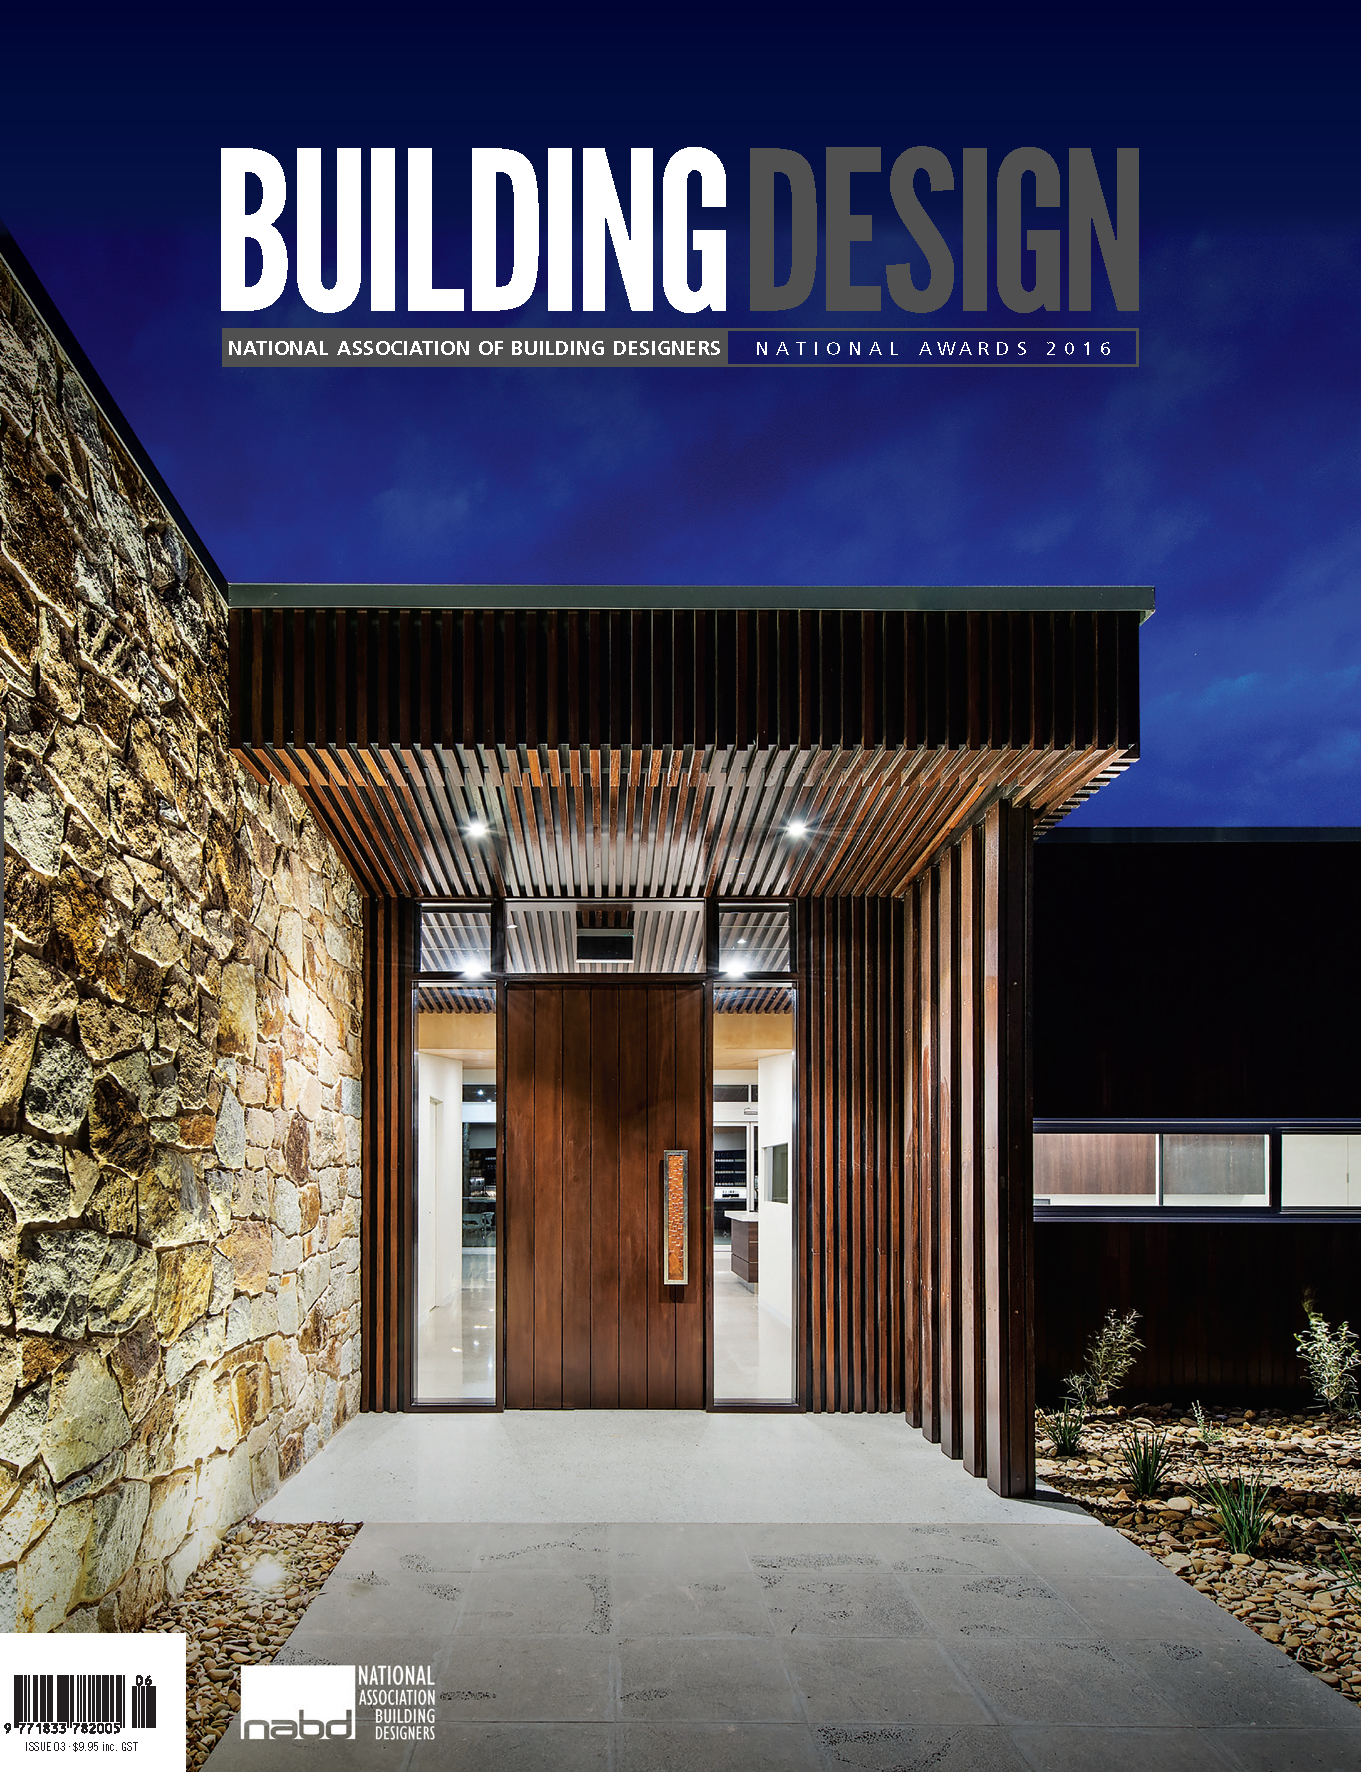 161004_Building Design Magazine (Chrismont Wines)_Page_1.png